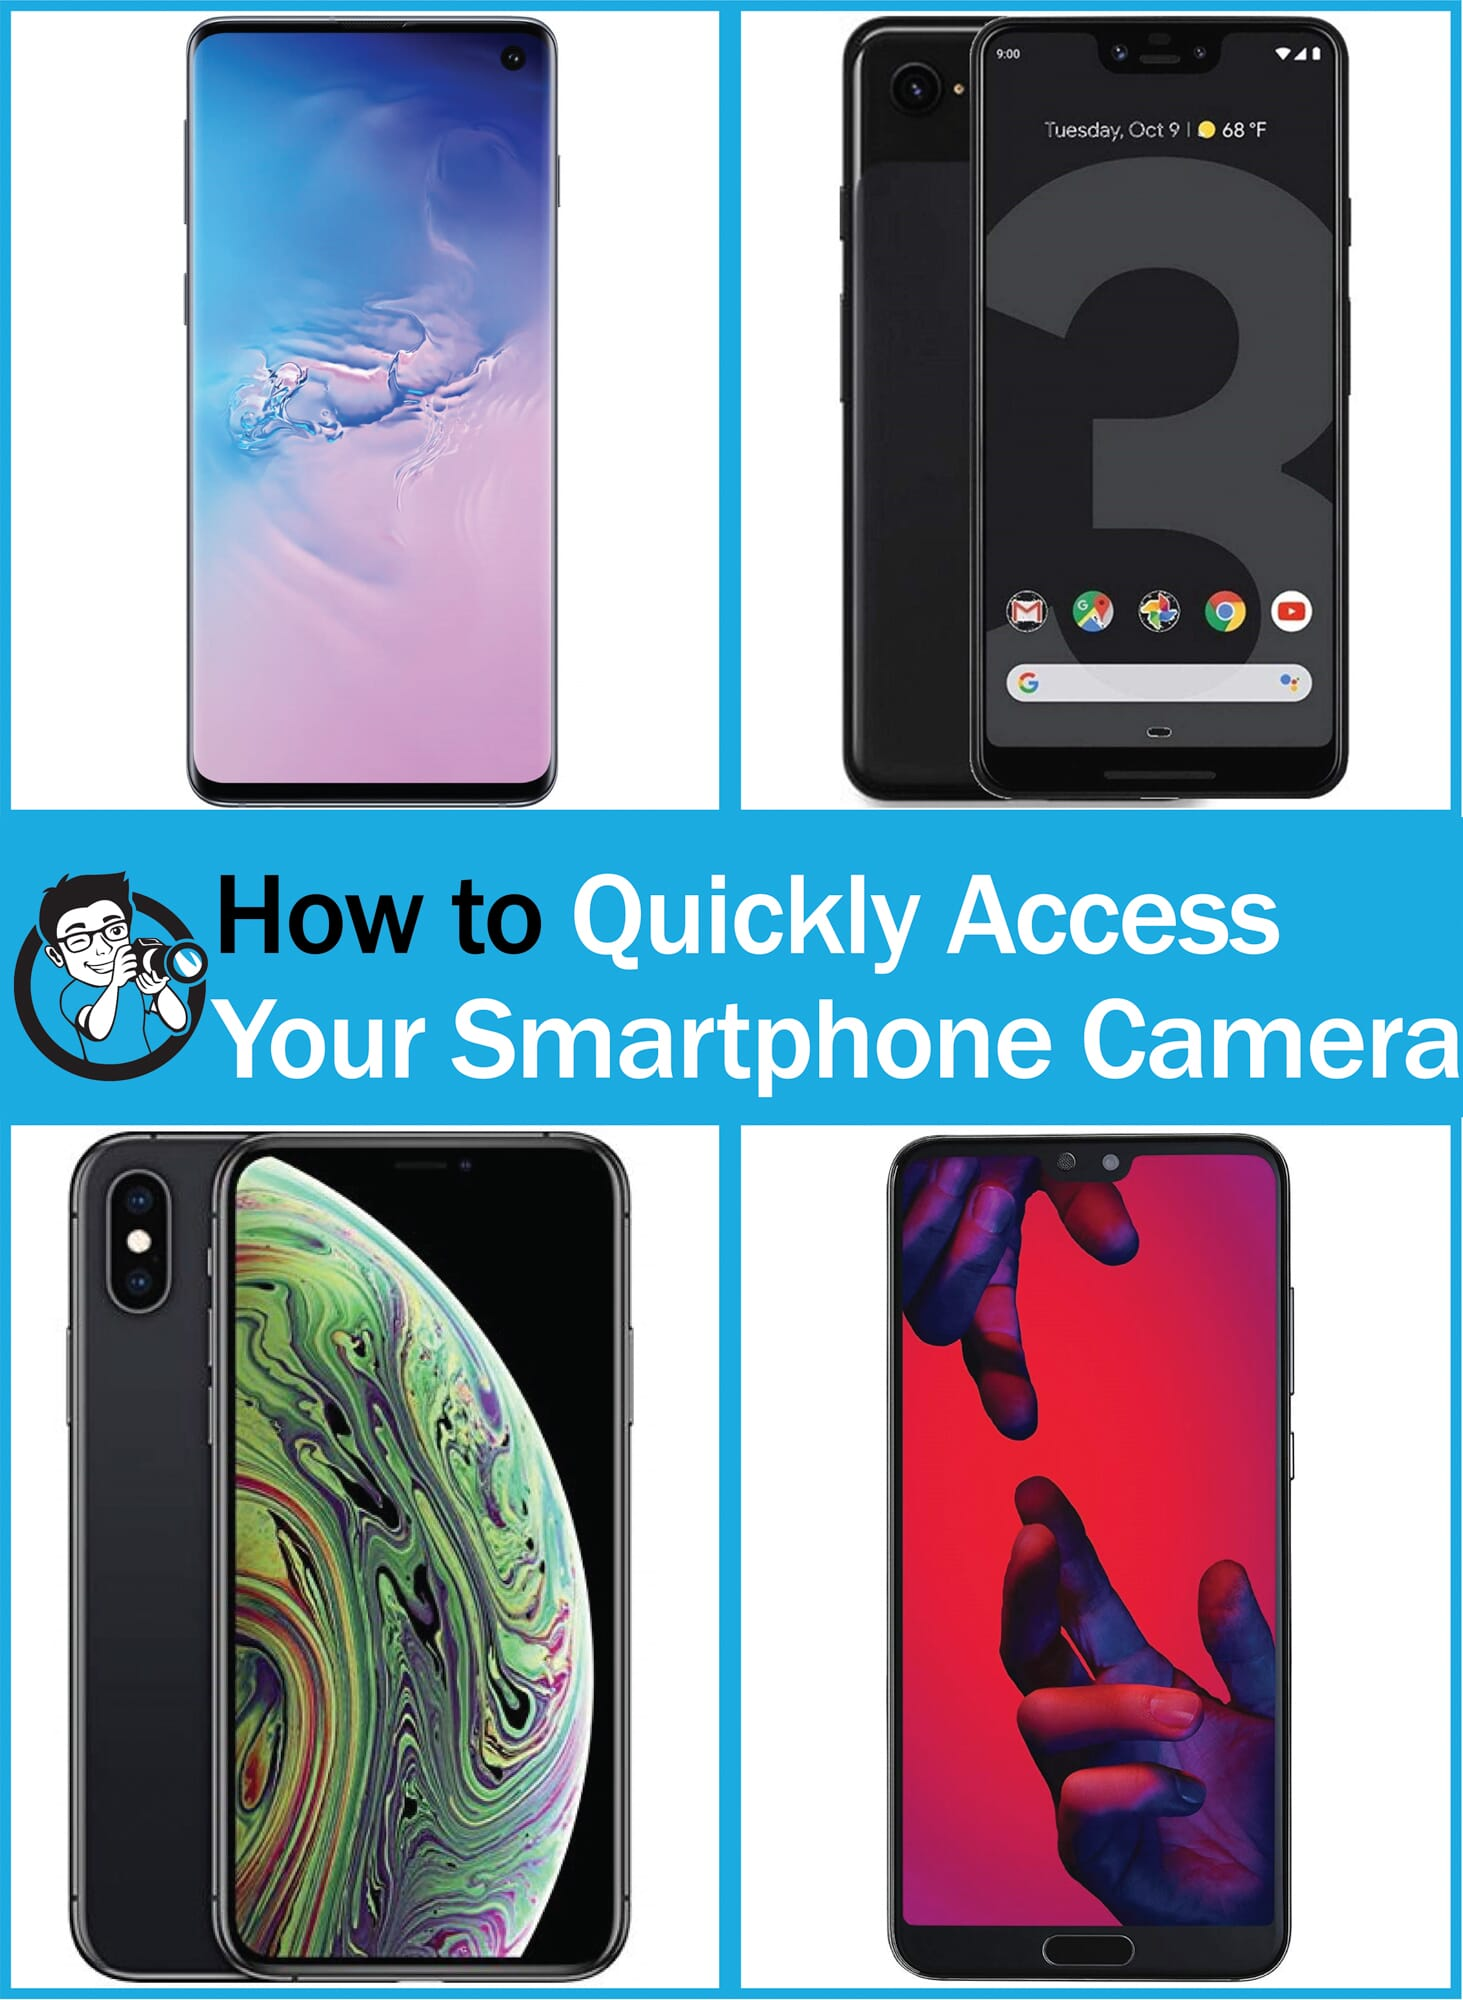 how to open smartphone camera fast